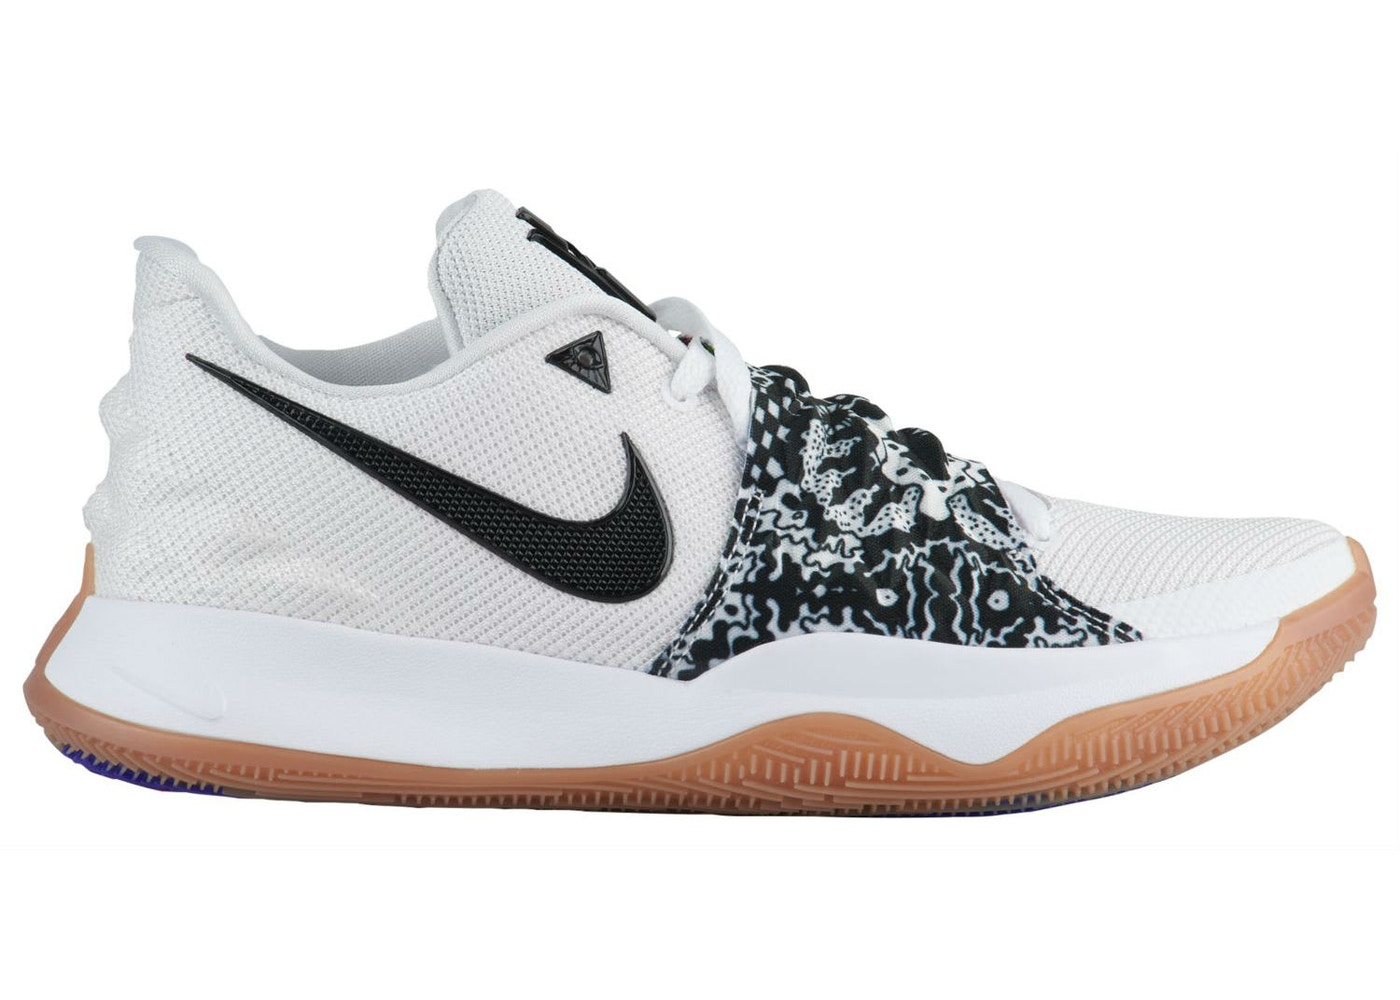 a34a2b066c83 Kyrie 4 Low White Black - AO8979-100